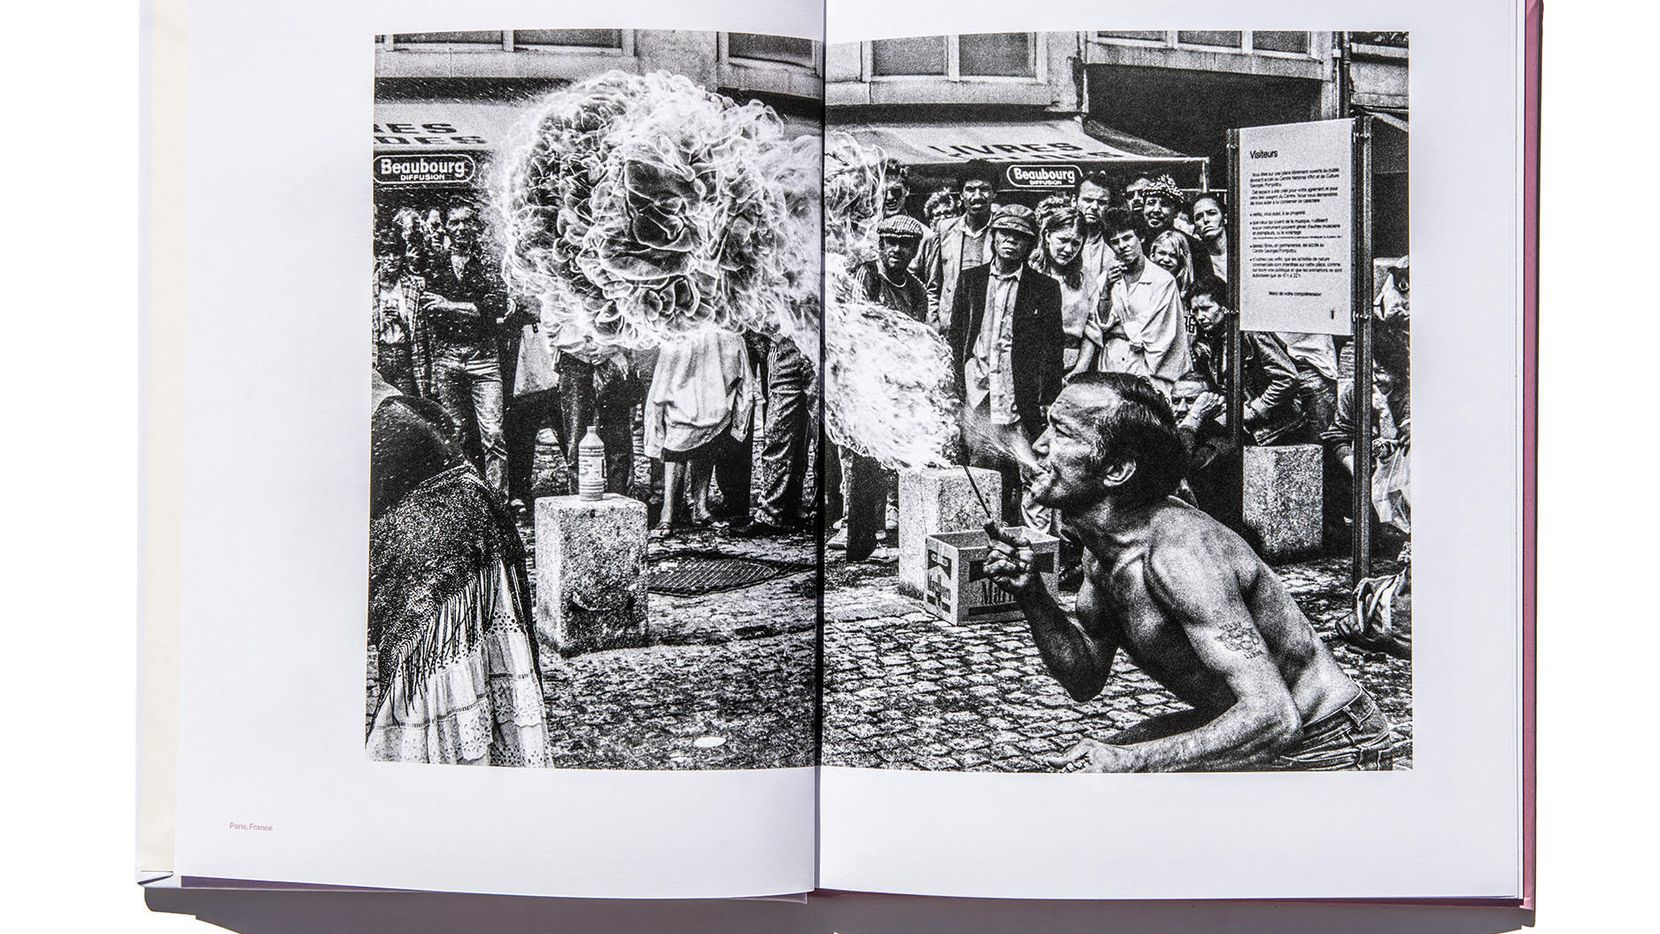 """Dallas photographer Fredrik Broden has launched a Kickstarter to finance his """"pandemic project"""" called """"Europa,"""" a coffee table book and collection of postcards and other items from his photographs taken in Europe during the 1980s and '90s."""